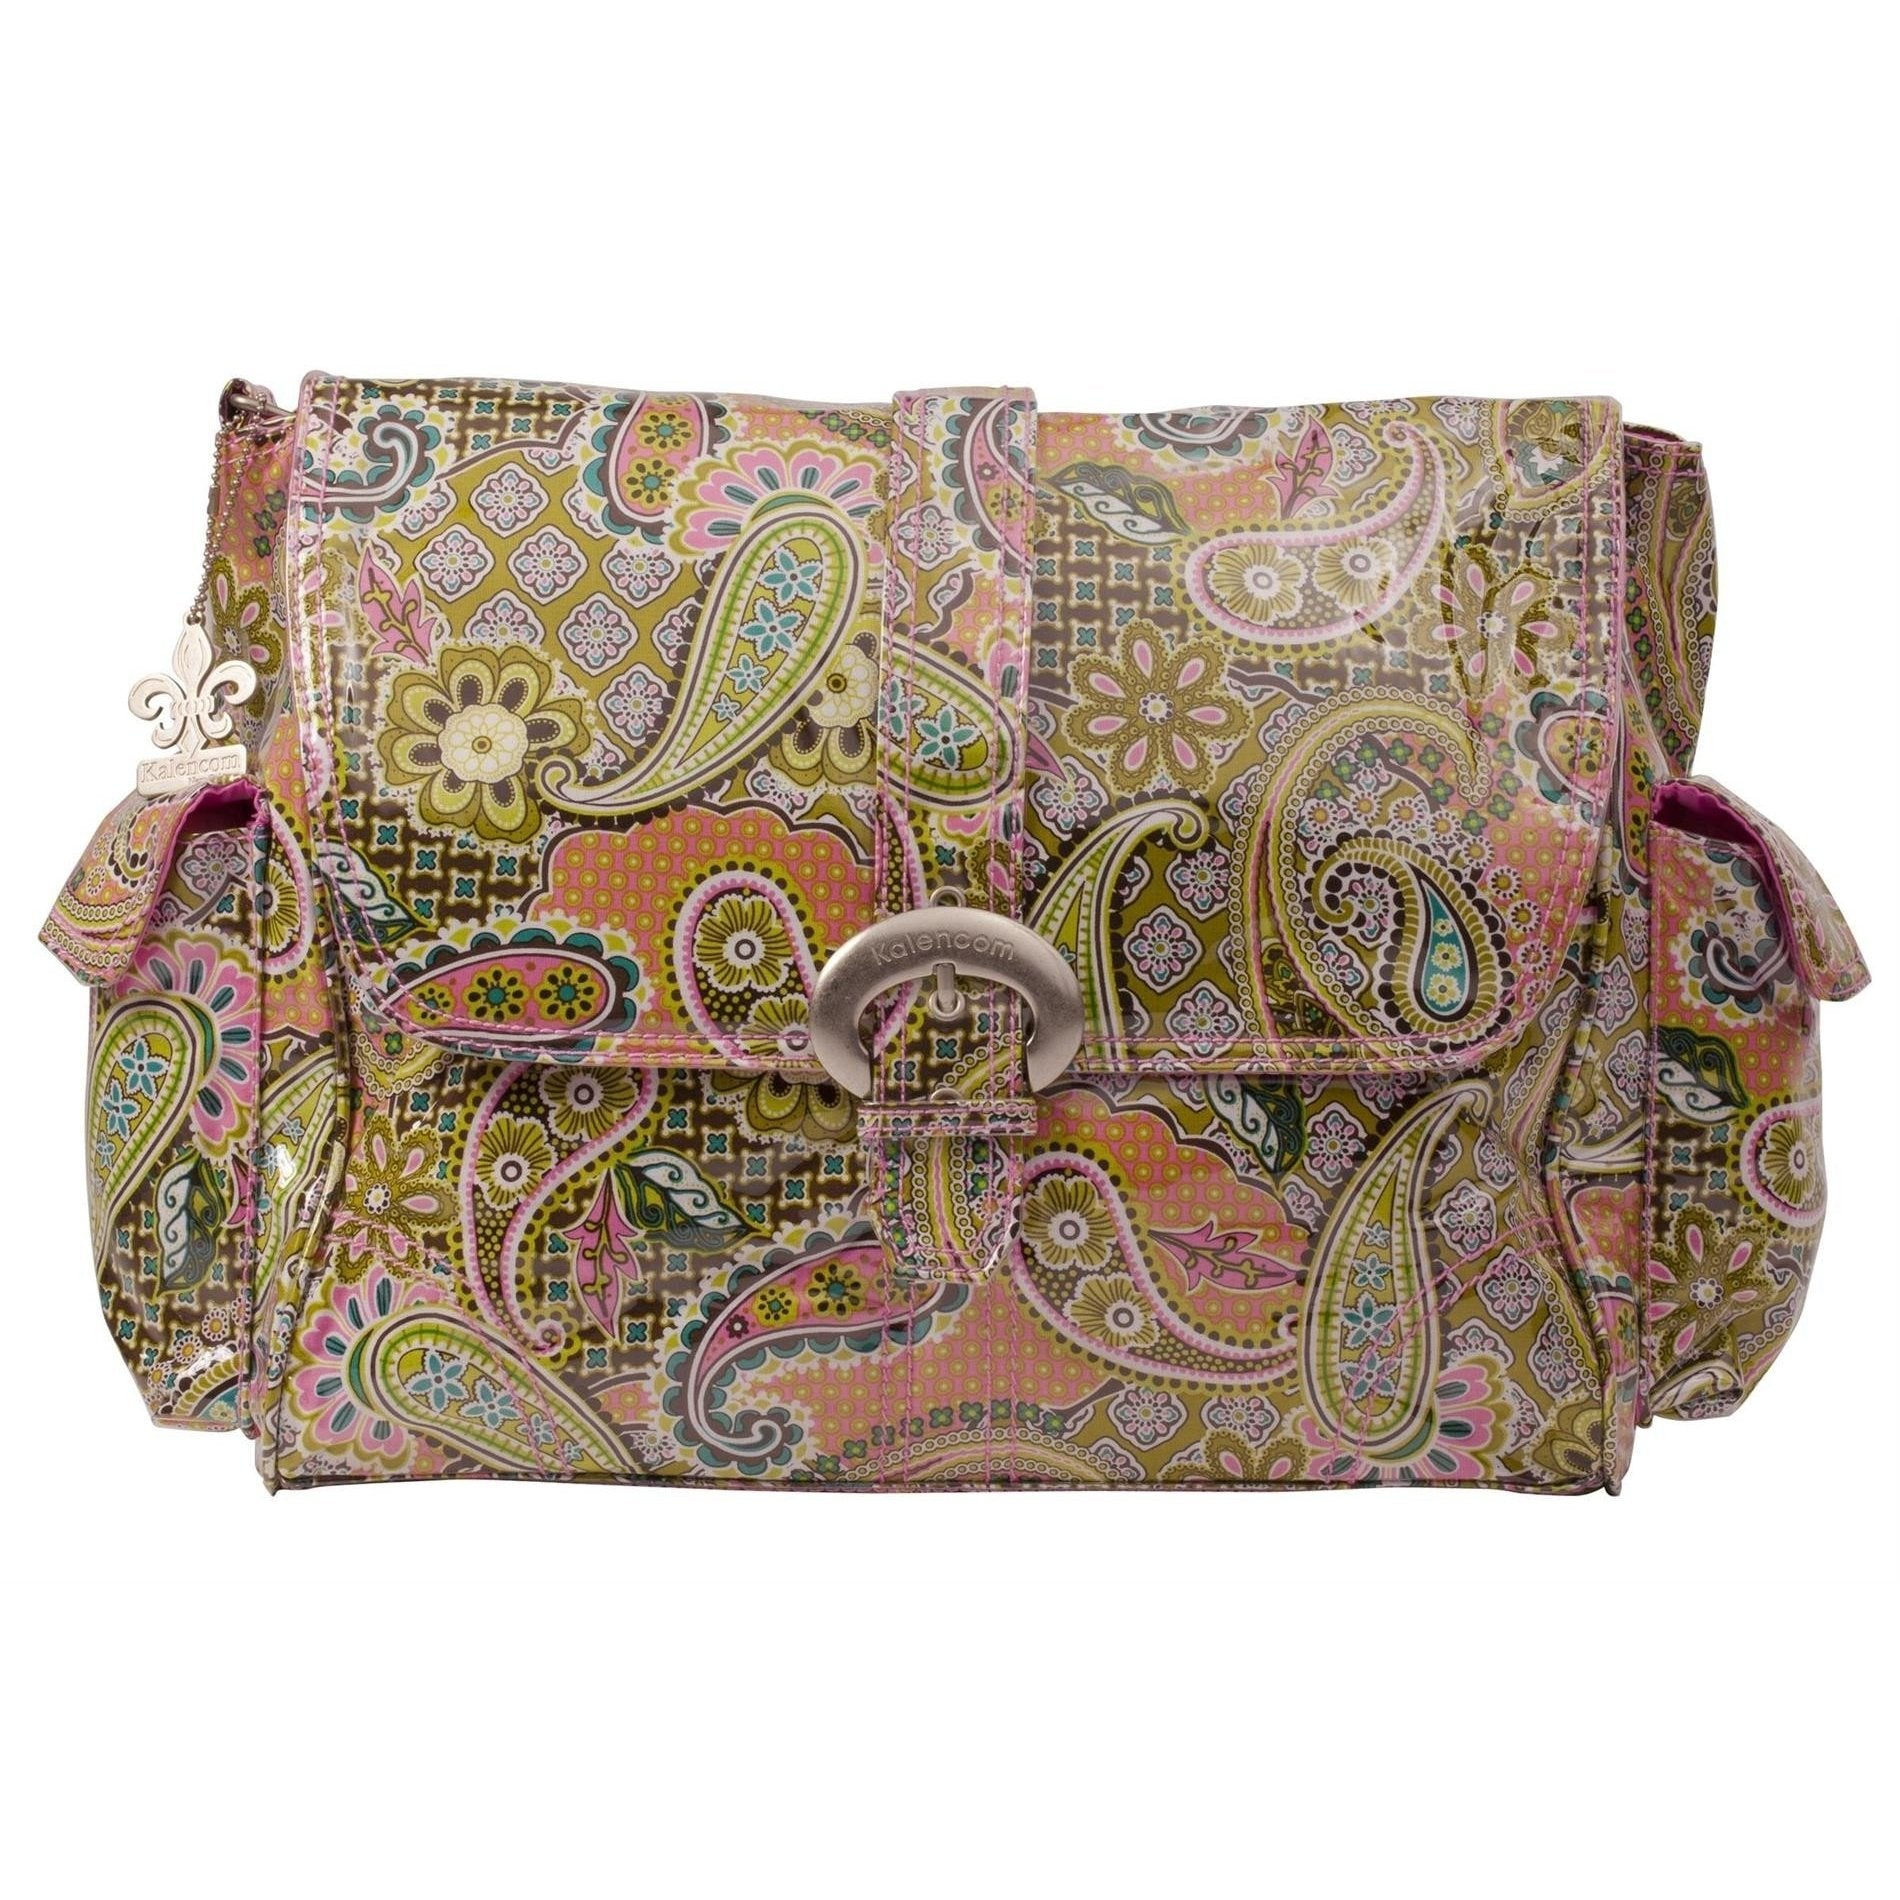 Florentine Paisley - Pink Laminated Buckle Diaper Bag | Style 2960 - Kalencom-Diaper Bags-Jack and Jill Boutique